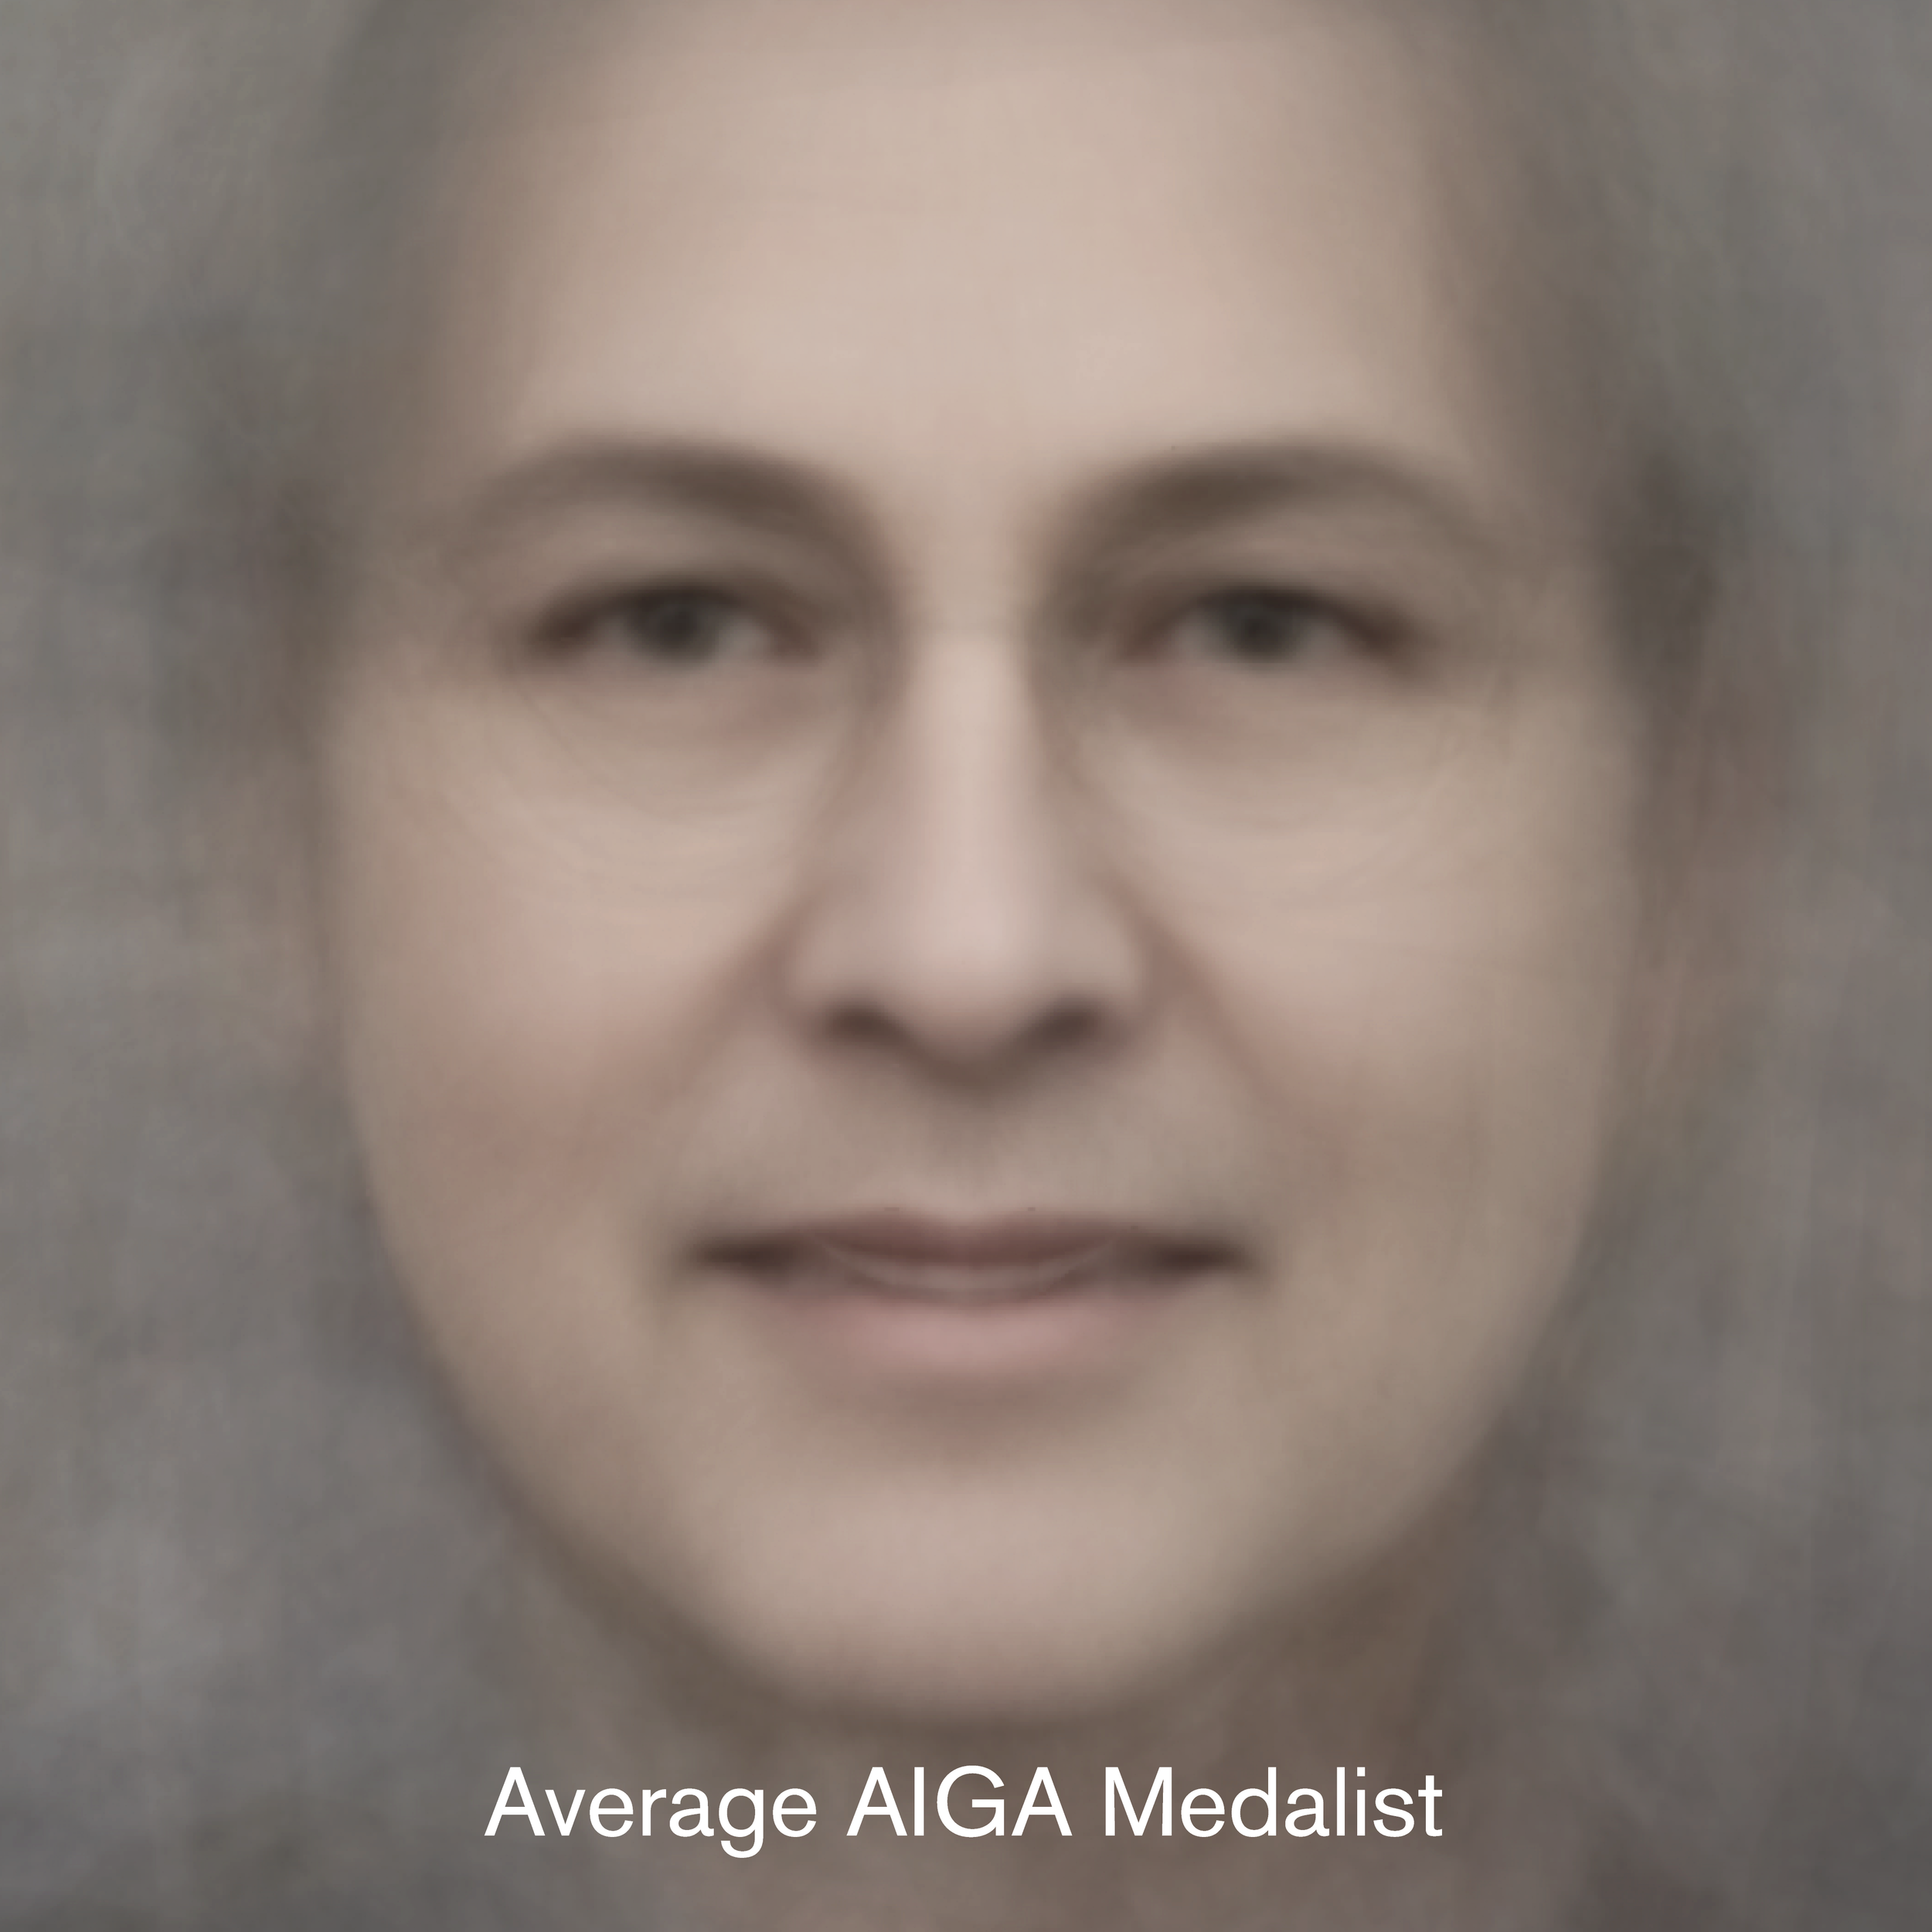 The source for this AIGA Average Medalist image is from AIGA.org on October of 2018. It uses 107 front facing images of medalists. 43 images were taken out due to low res/not front facing.